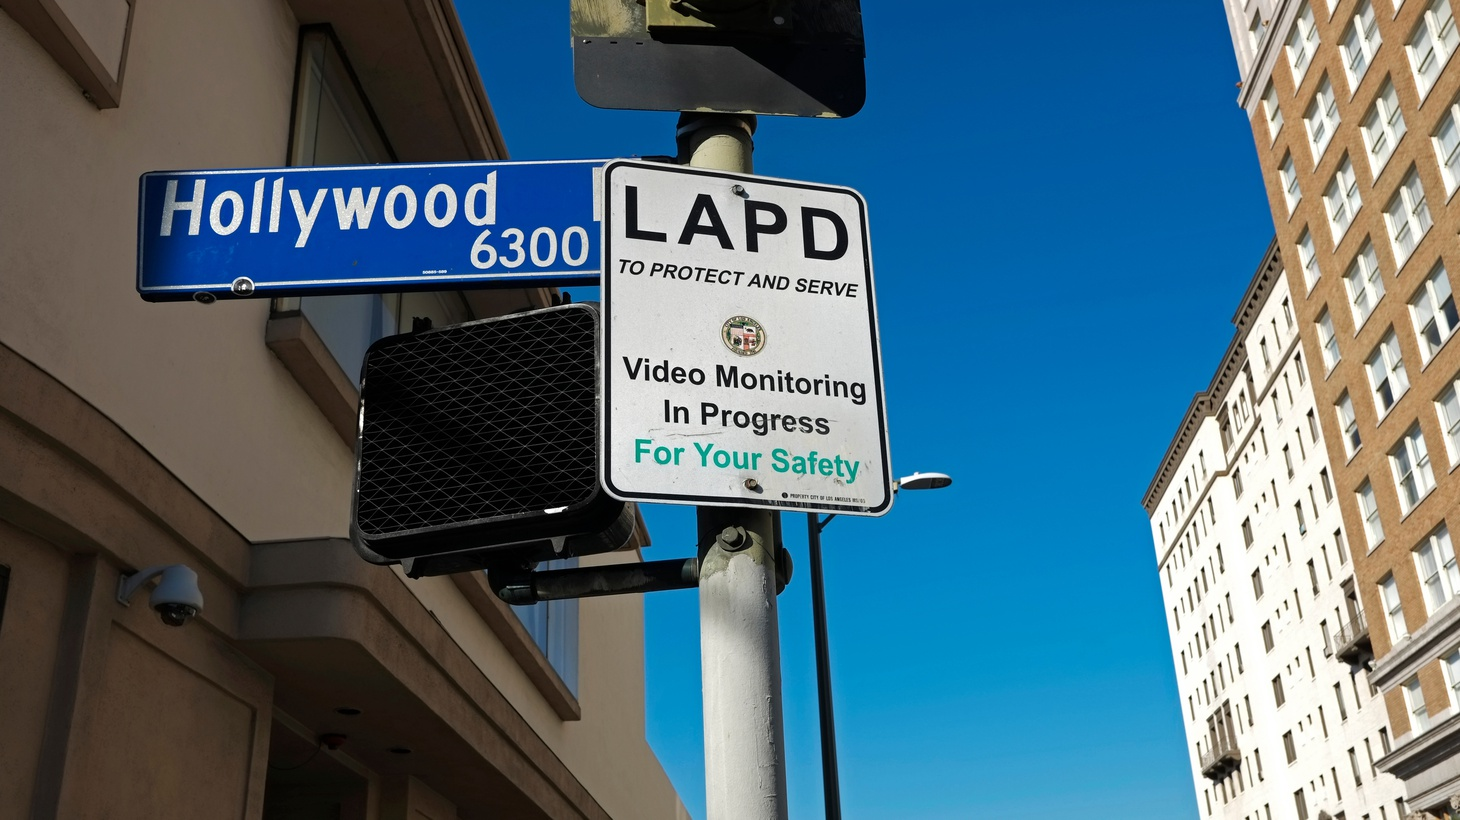 An LAPD sign on Hollywood Boulevard says video monitoring is in progress.